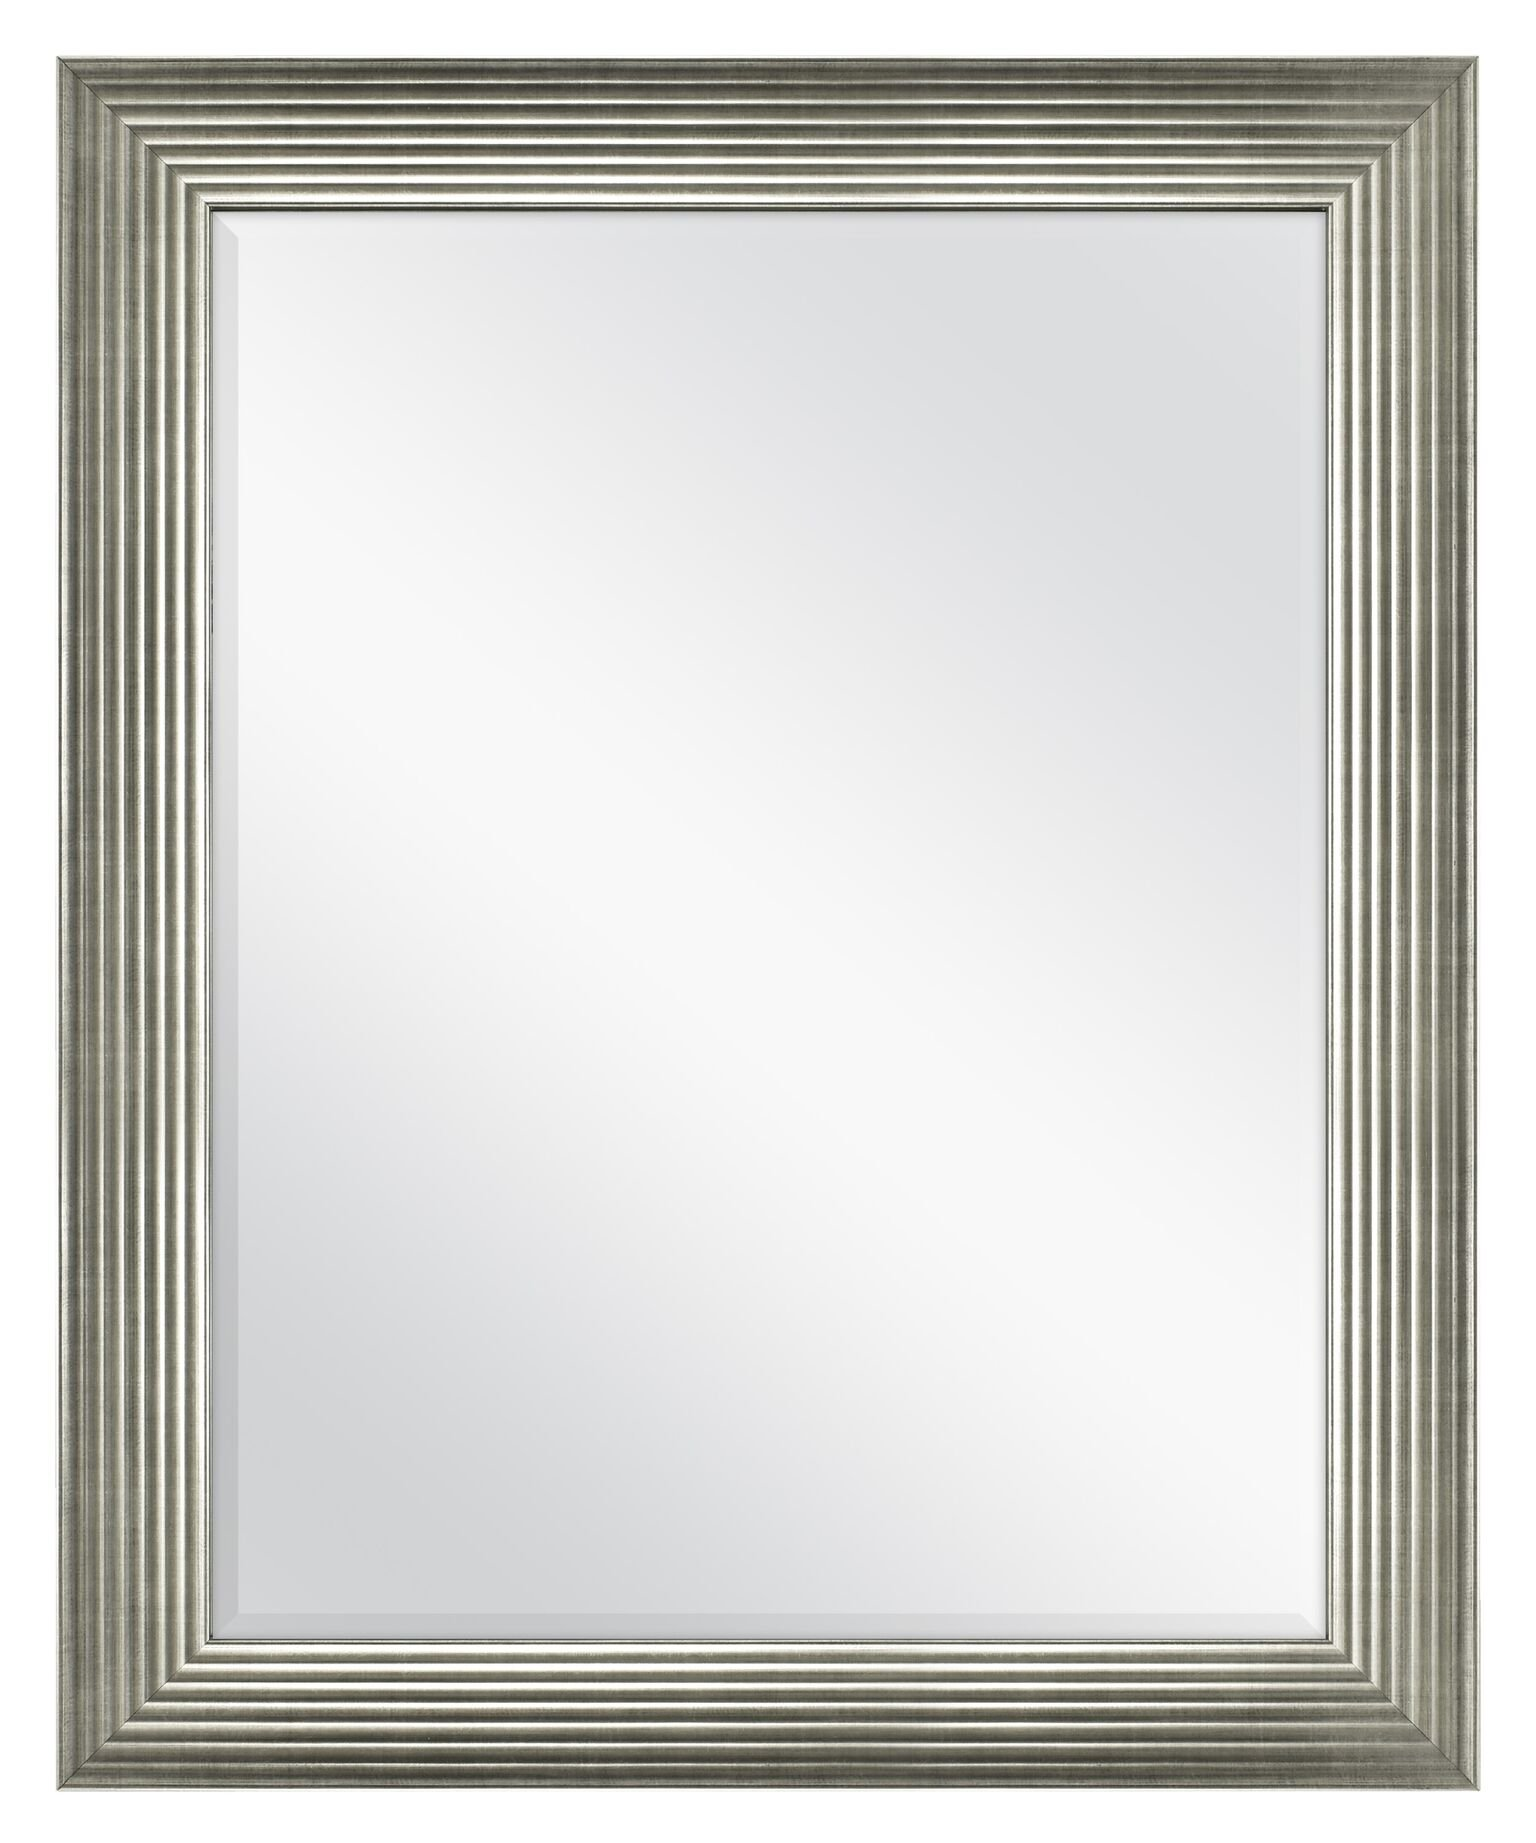 MCS 22x28 Inch Summit Mirror, 27.5x33.5 Overall Size, Silver (66942) 27.5 x 33.5 Inch,